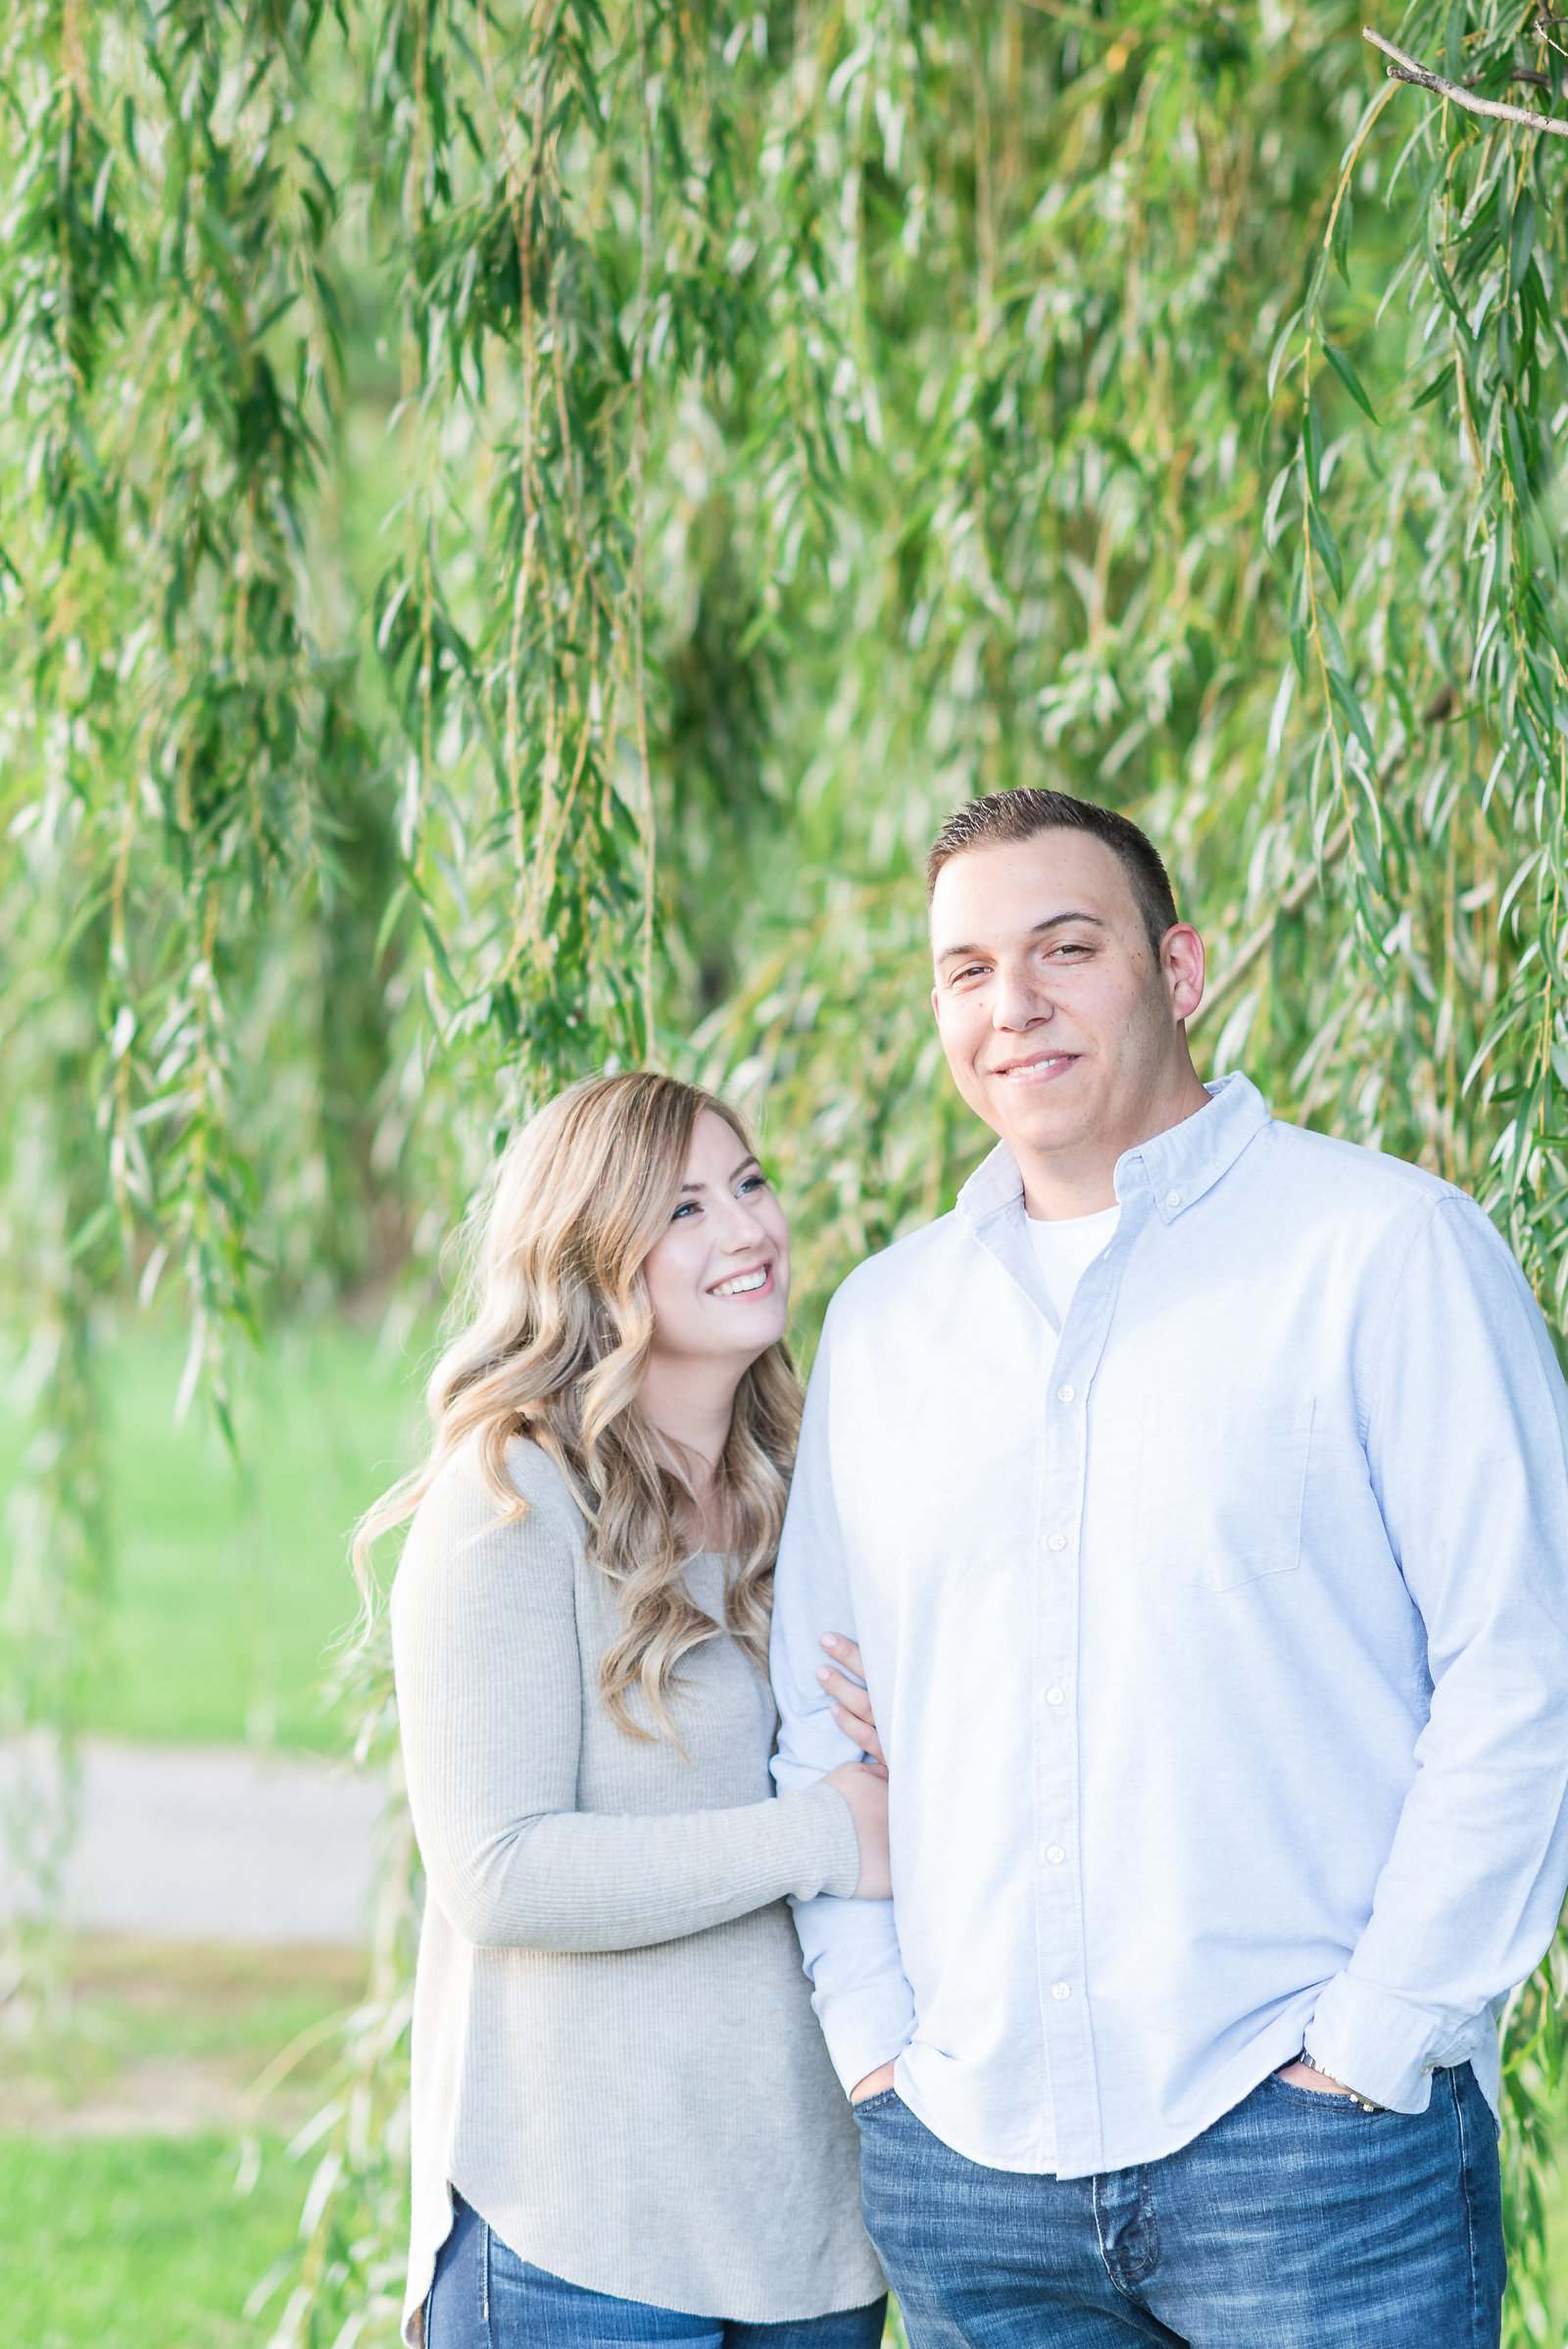 Willow-Tree-Engagement-Photos-Ottawa-170048